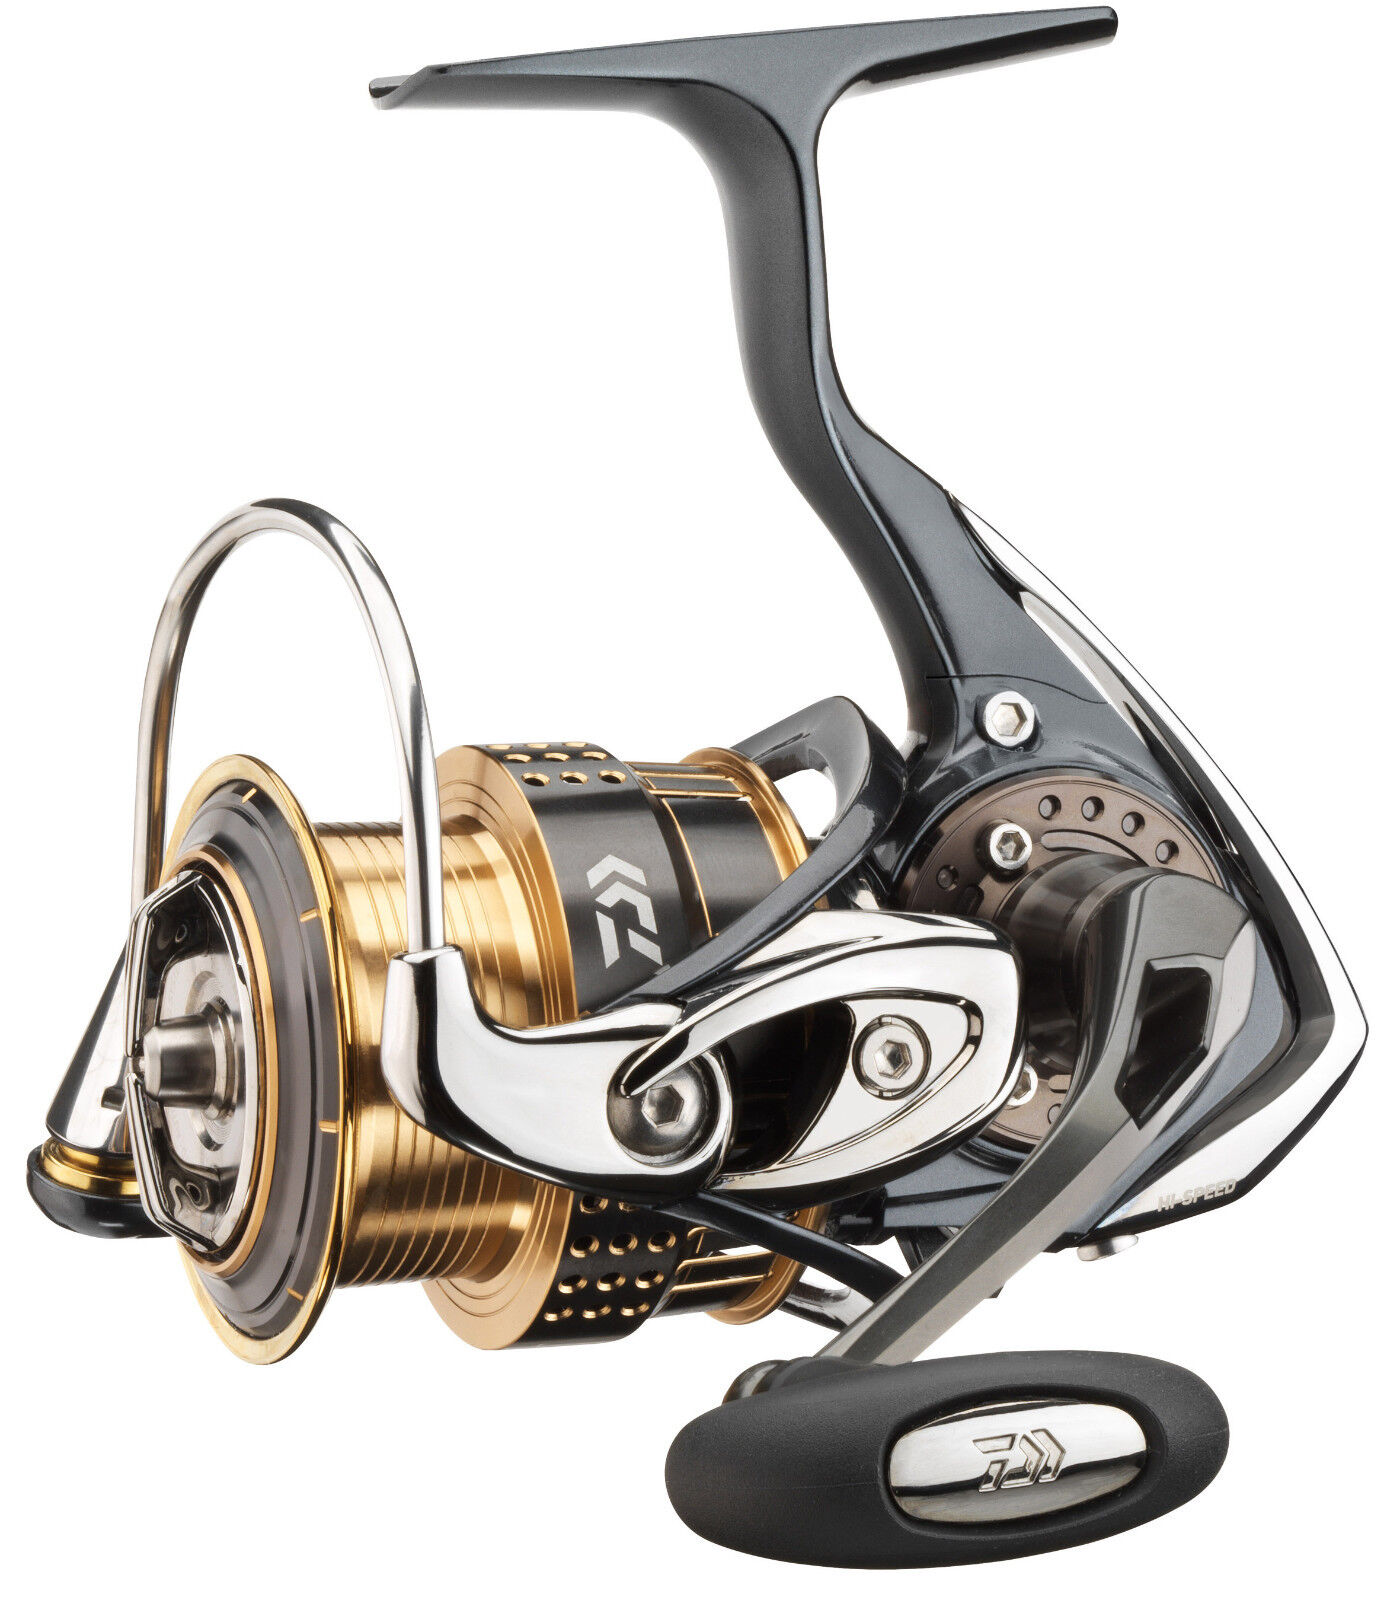 Daiwa exist 15' spinnrolle diferentes tamaños mag sealed High End spinn papel